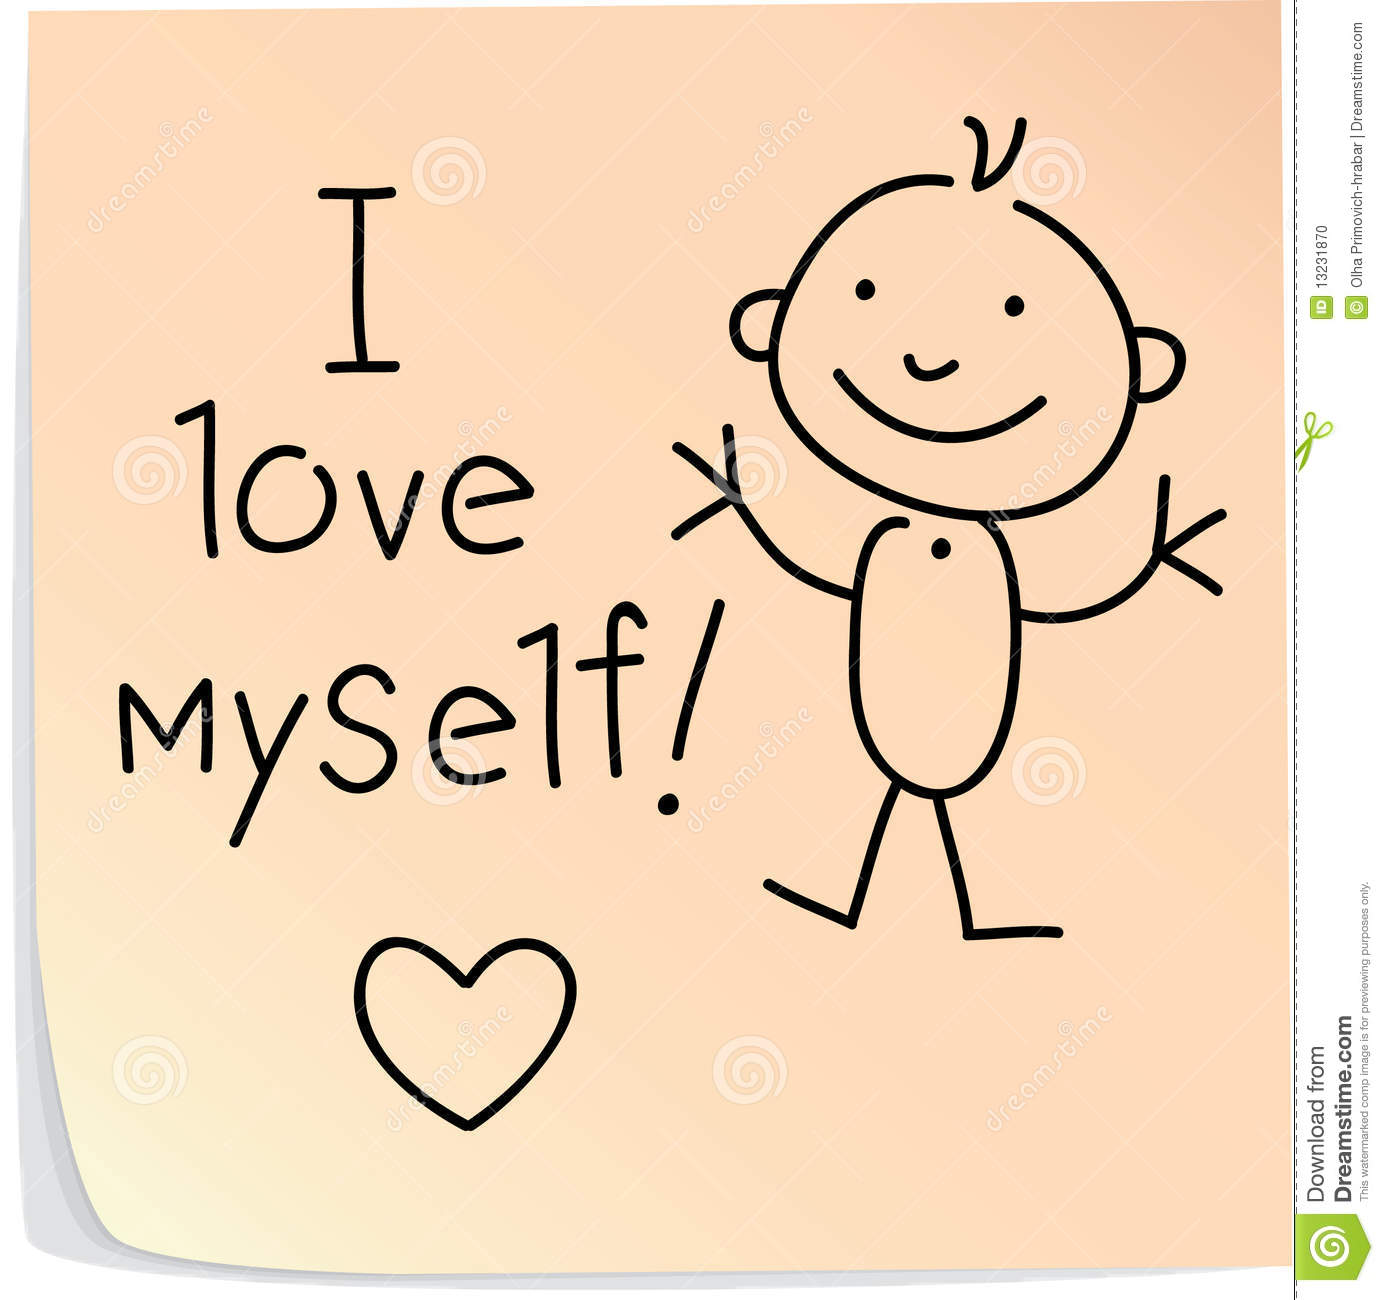 Post-it With Words I Love Myself Stock Photo - Image: 13231870